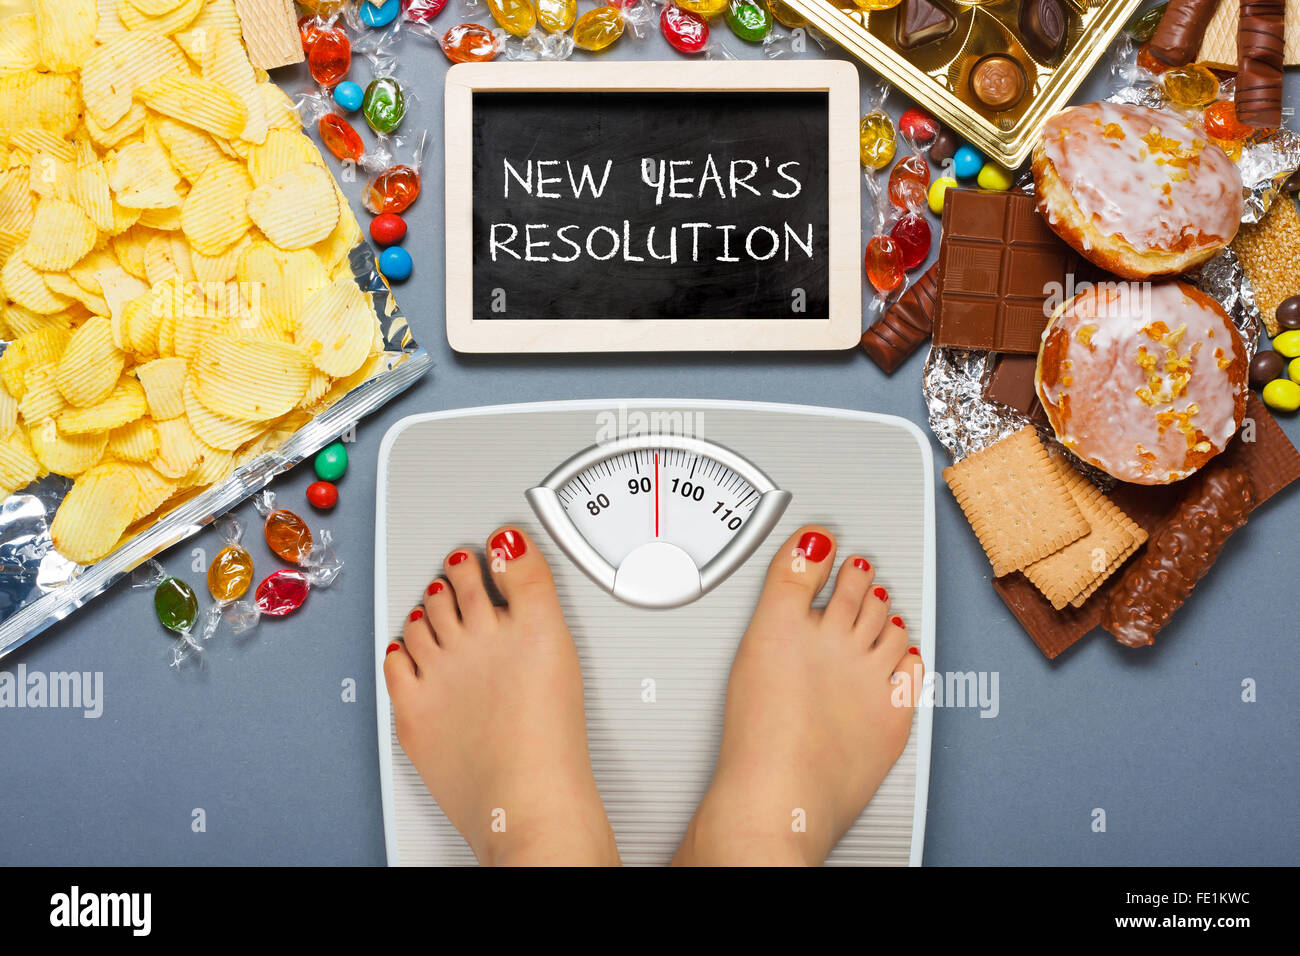 Diet concept. Feet of a young woman on bathroom scale - Stock Image